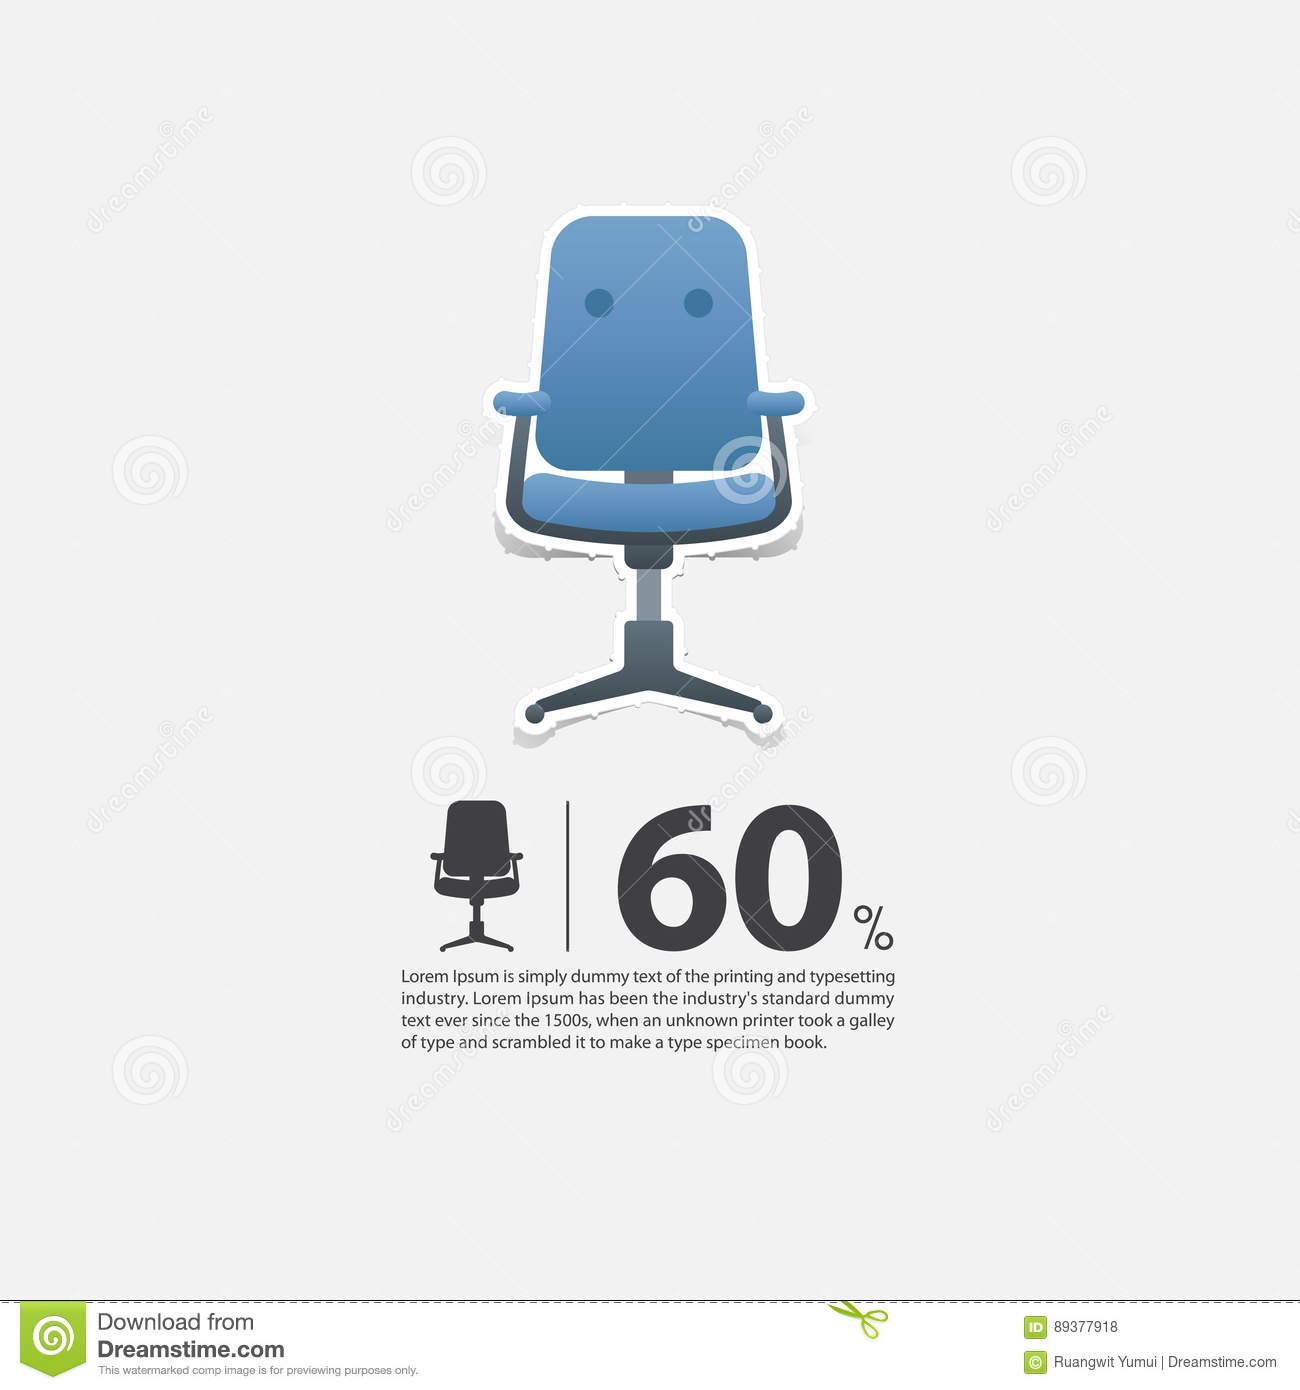 office chair for sale wood floor protectors legs in flat design living room interior minimal icon furniture poster blue on white background